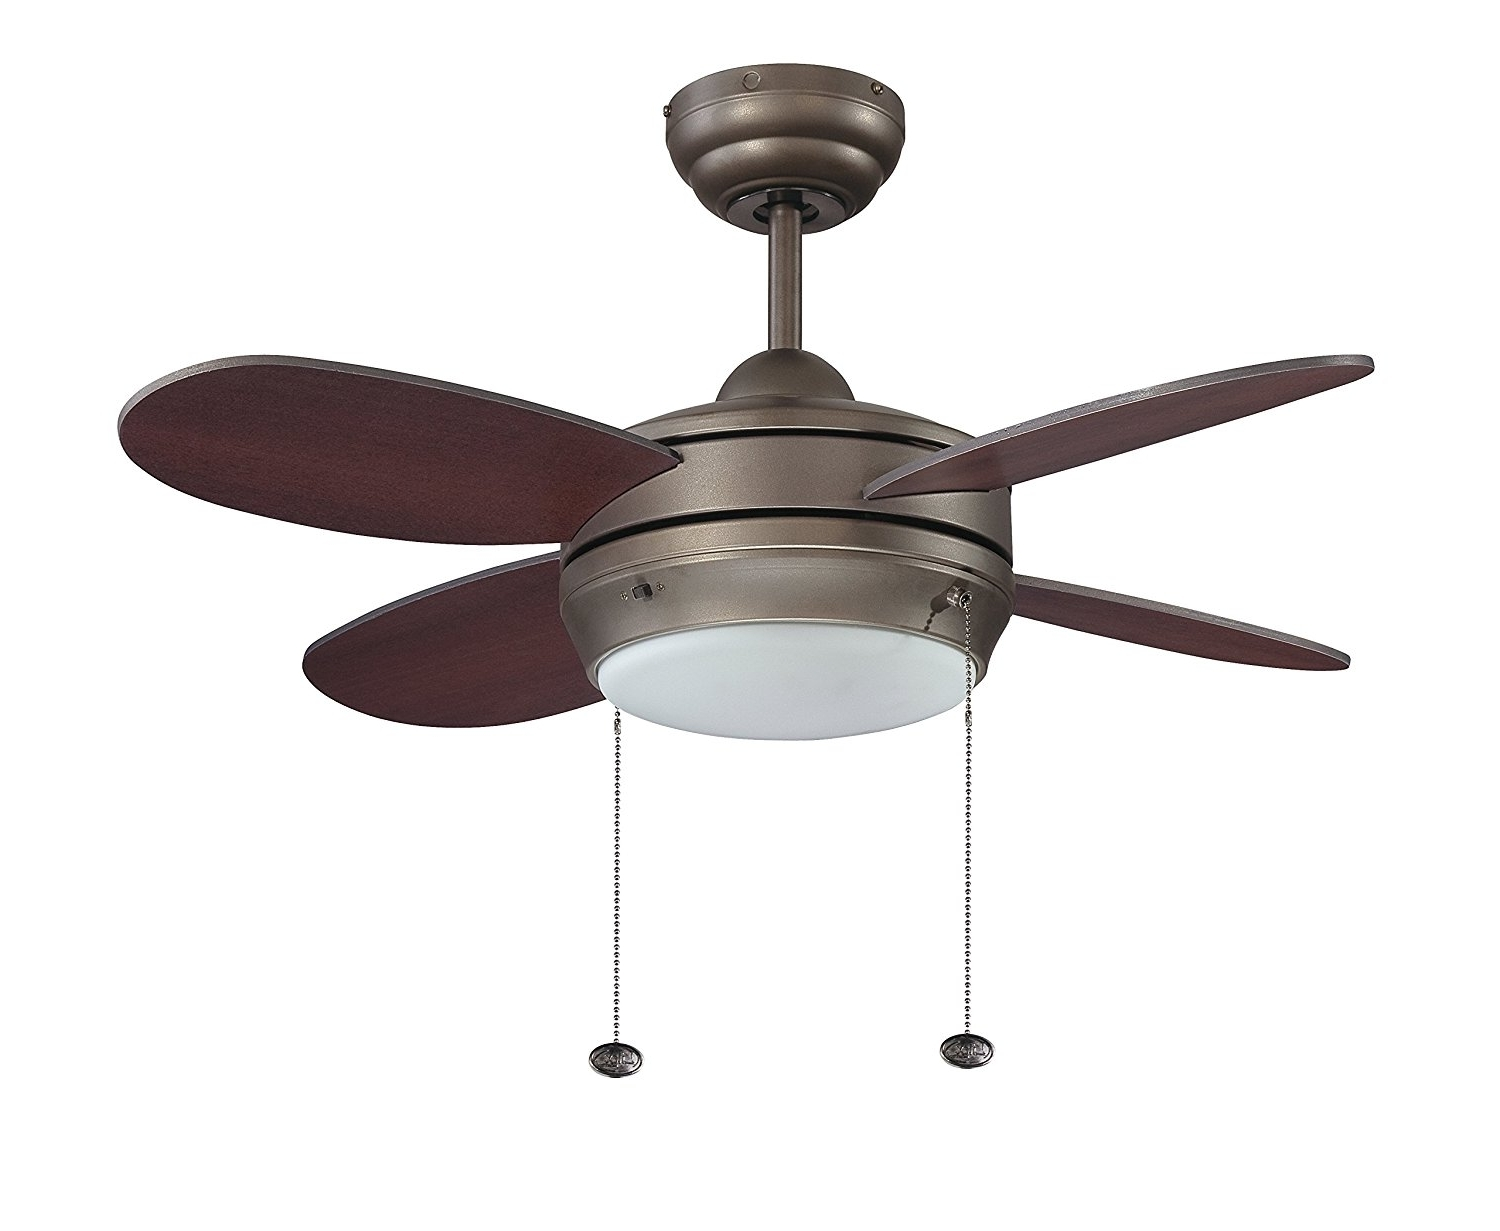 Trendy 24 Inch Outdoor Ceiling Fans With Light Pertaining To 24 Inch Ceiling Fan With Light Lowes Ceiling Lights Rustic Ceiling (View 17 of 20)